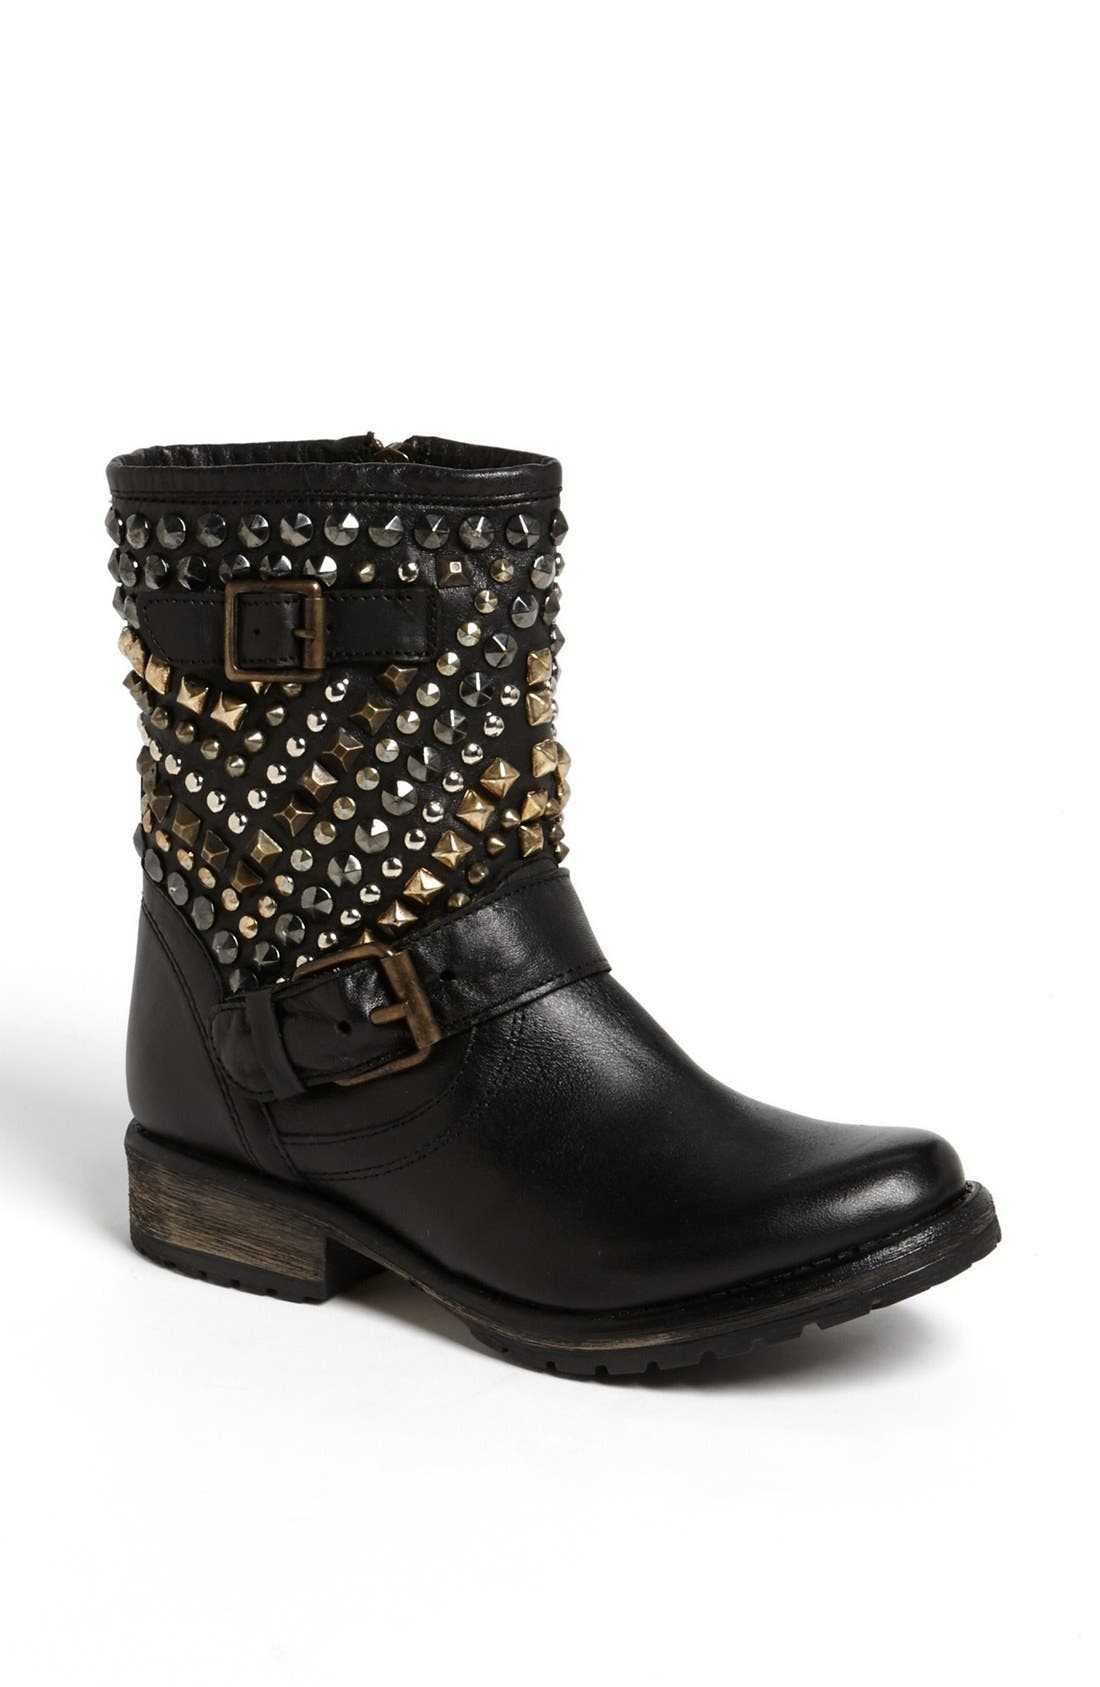 STEVE MADDEN 'Marcoo' Boot, Main, color, 001